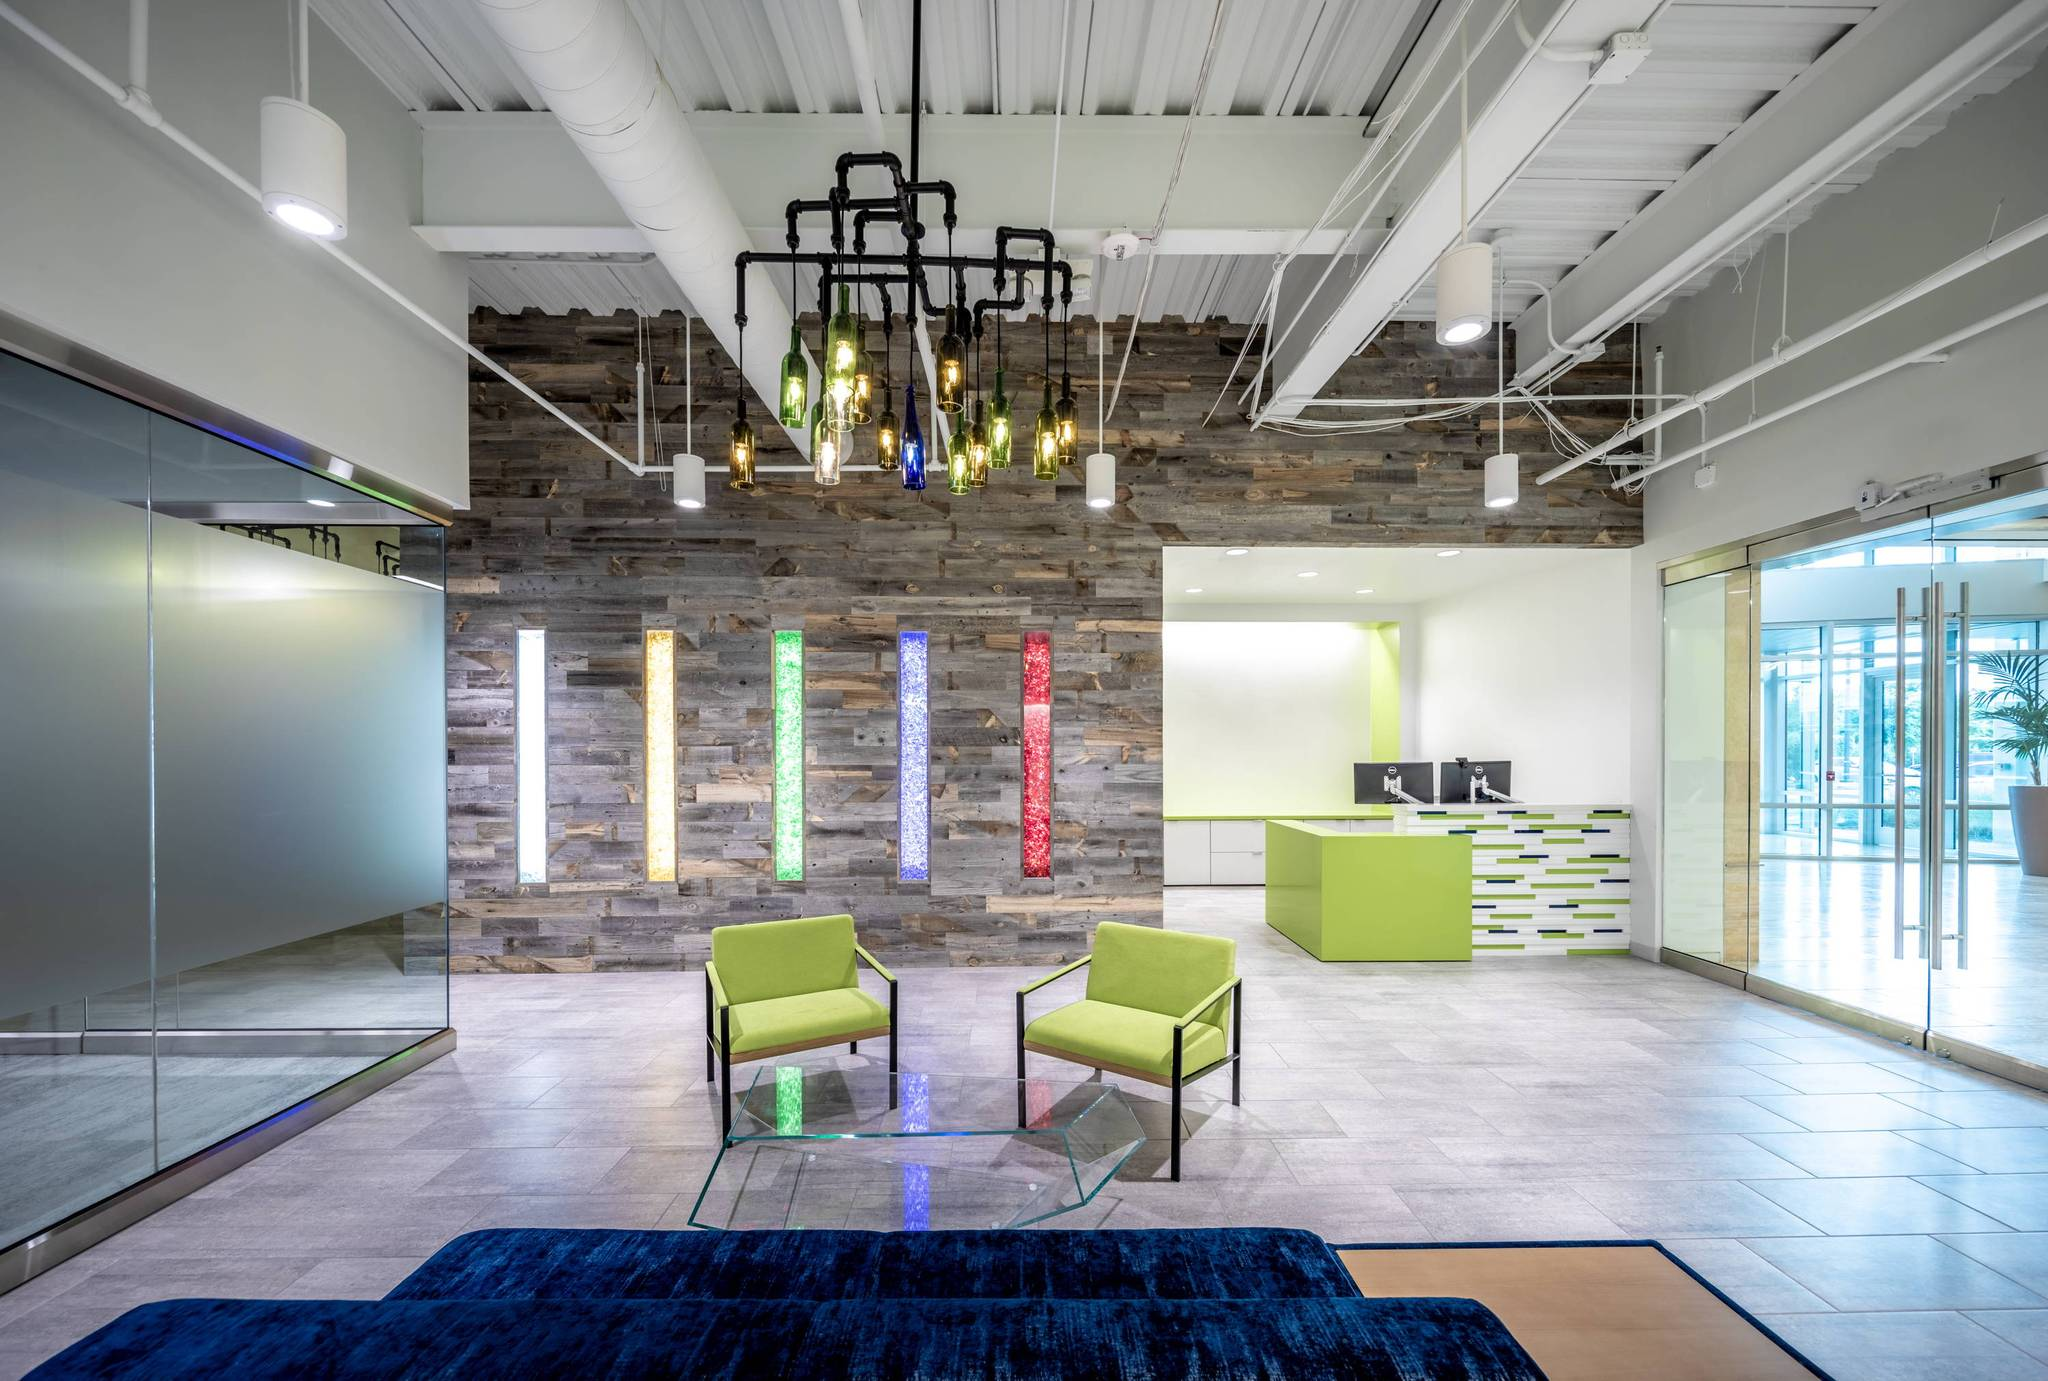 n2design created this lobby for Strategic materials a glass recycling company that combines recycled glass and reclaimed wood to beautiful effect.